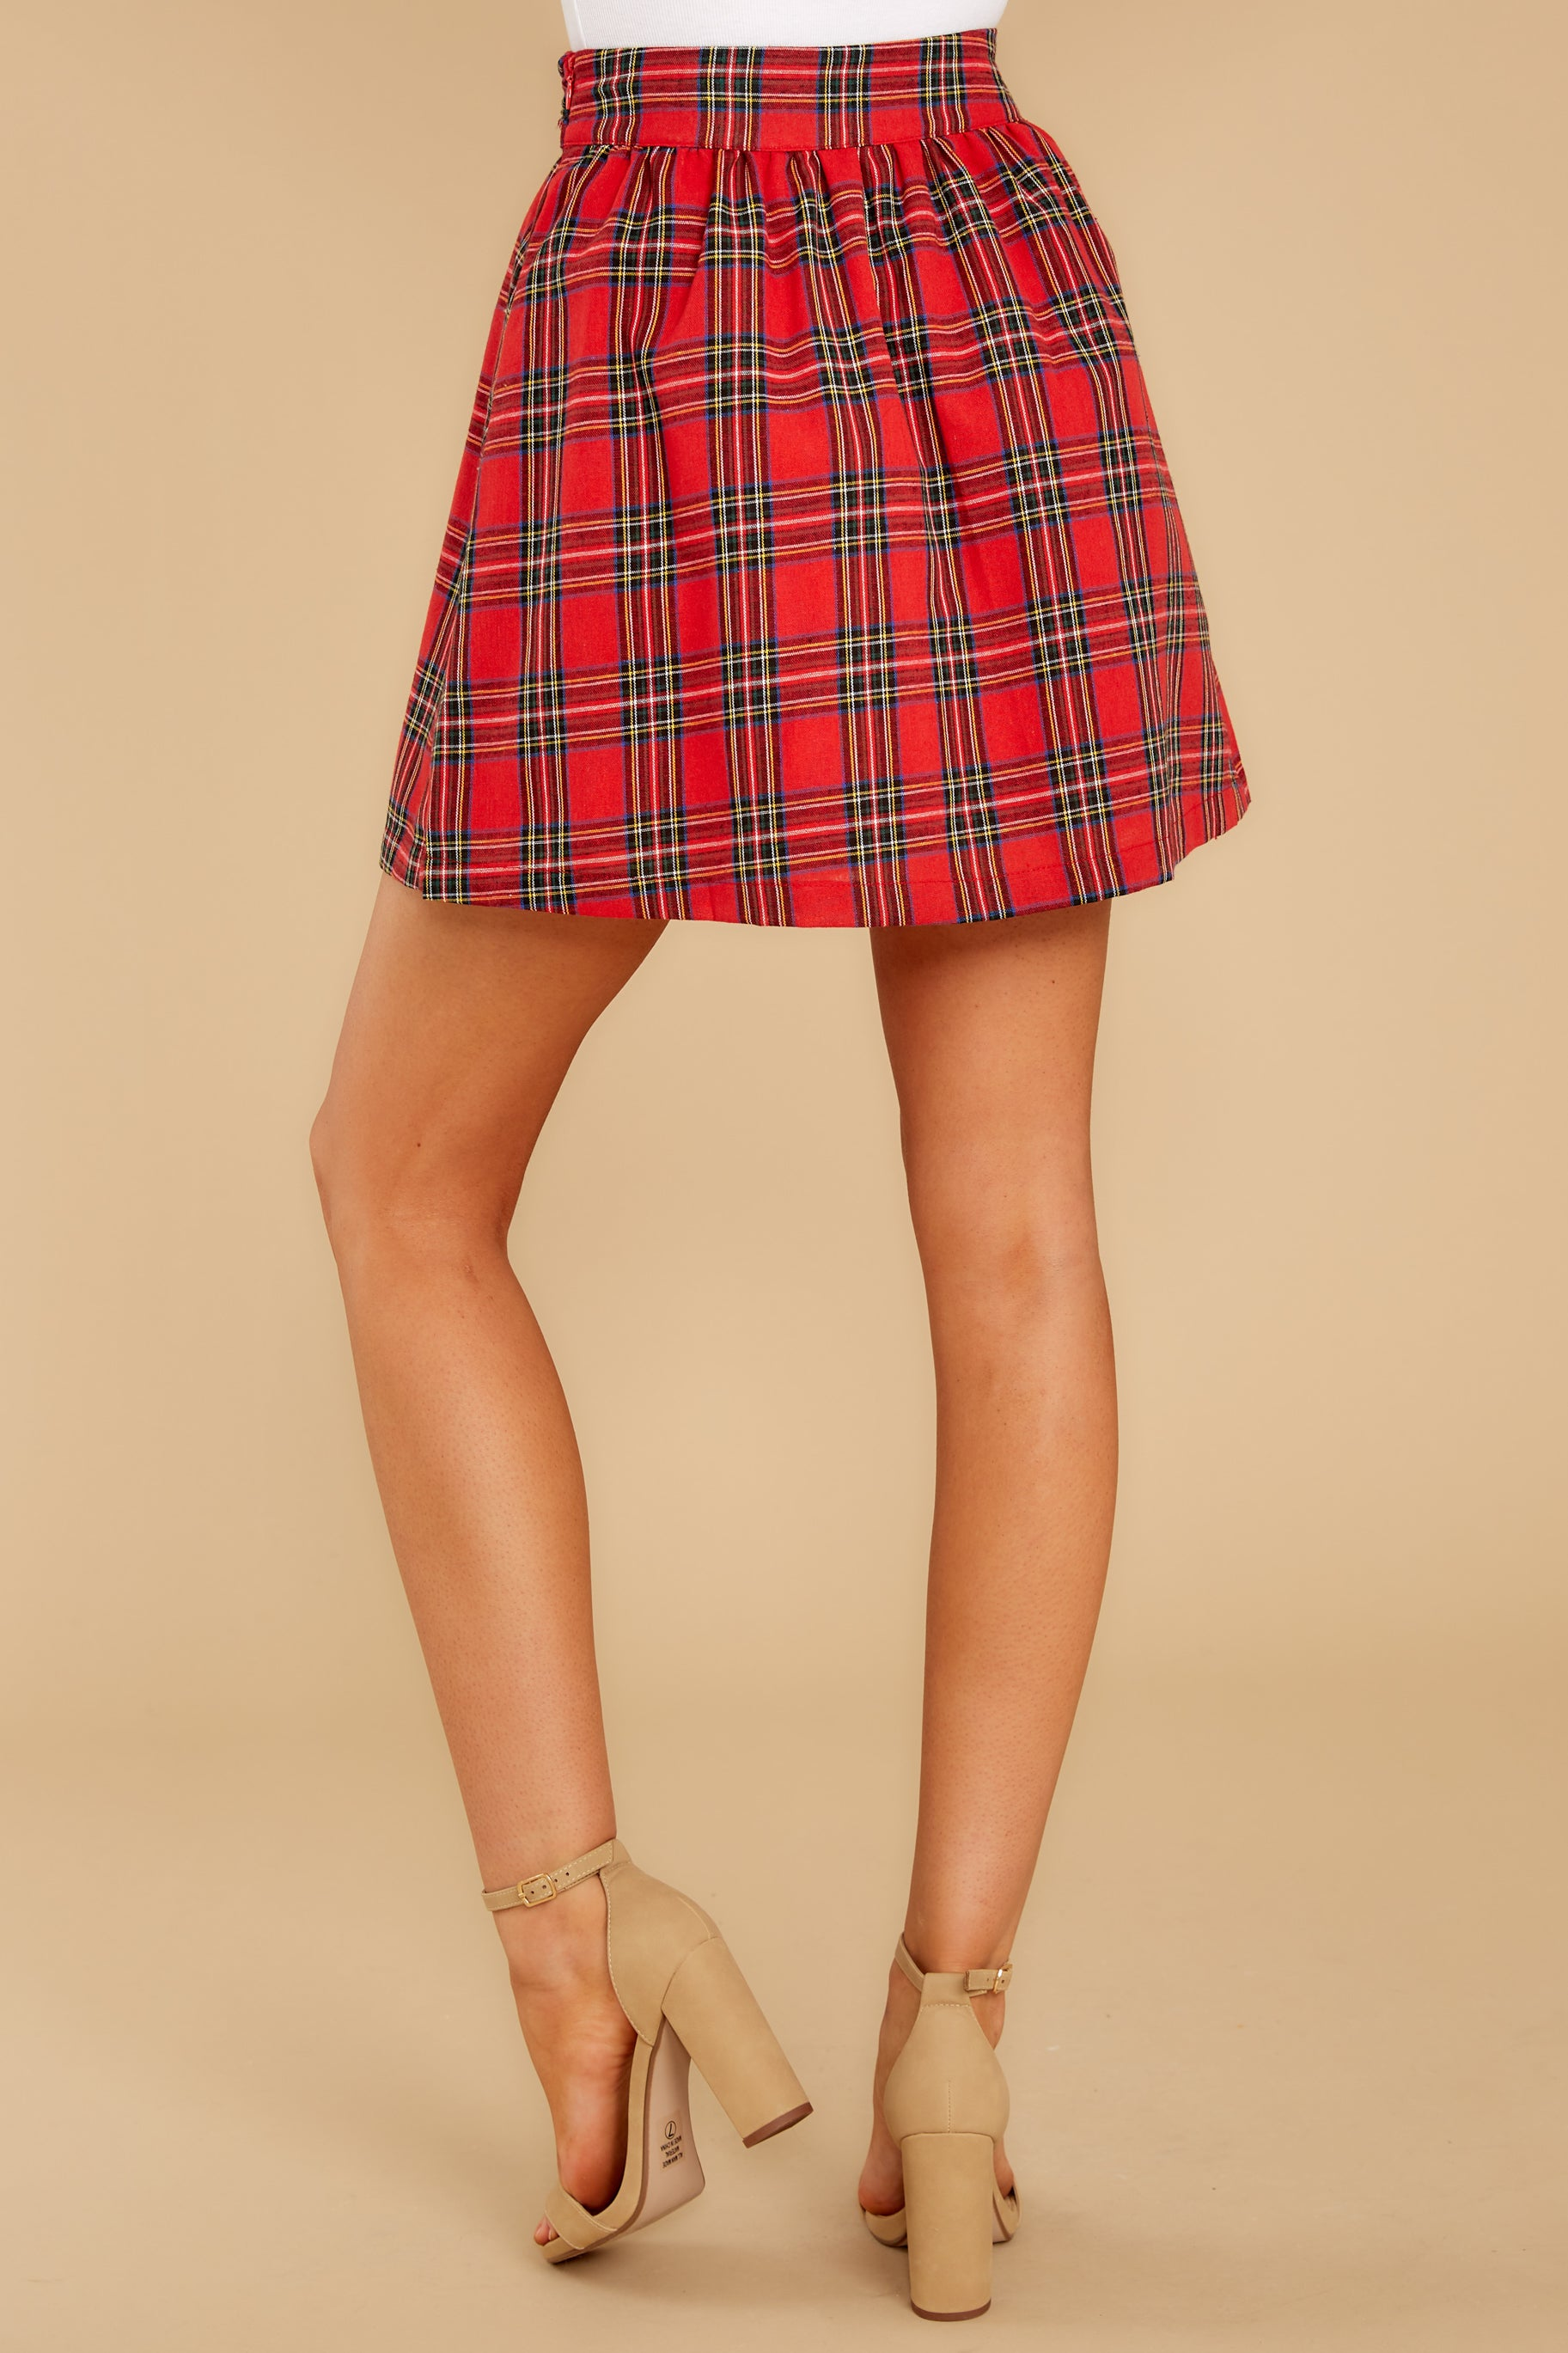 4 Tied With A Bow Red Plaid Skirt at reddress.com